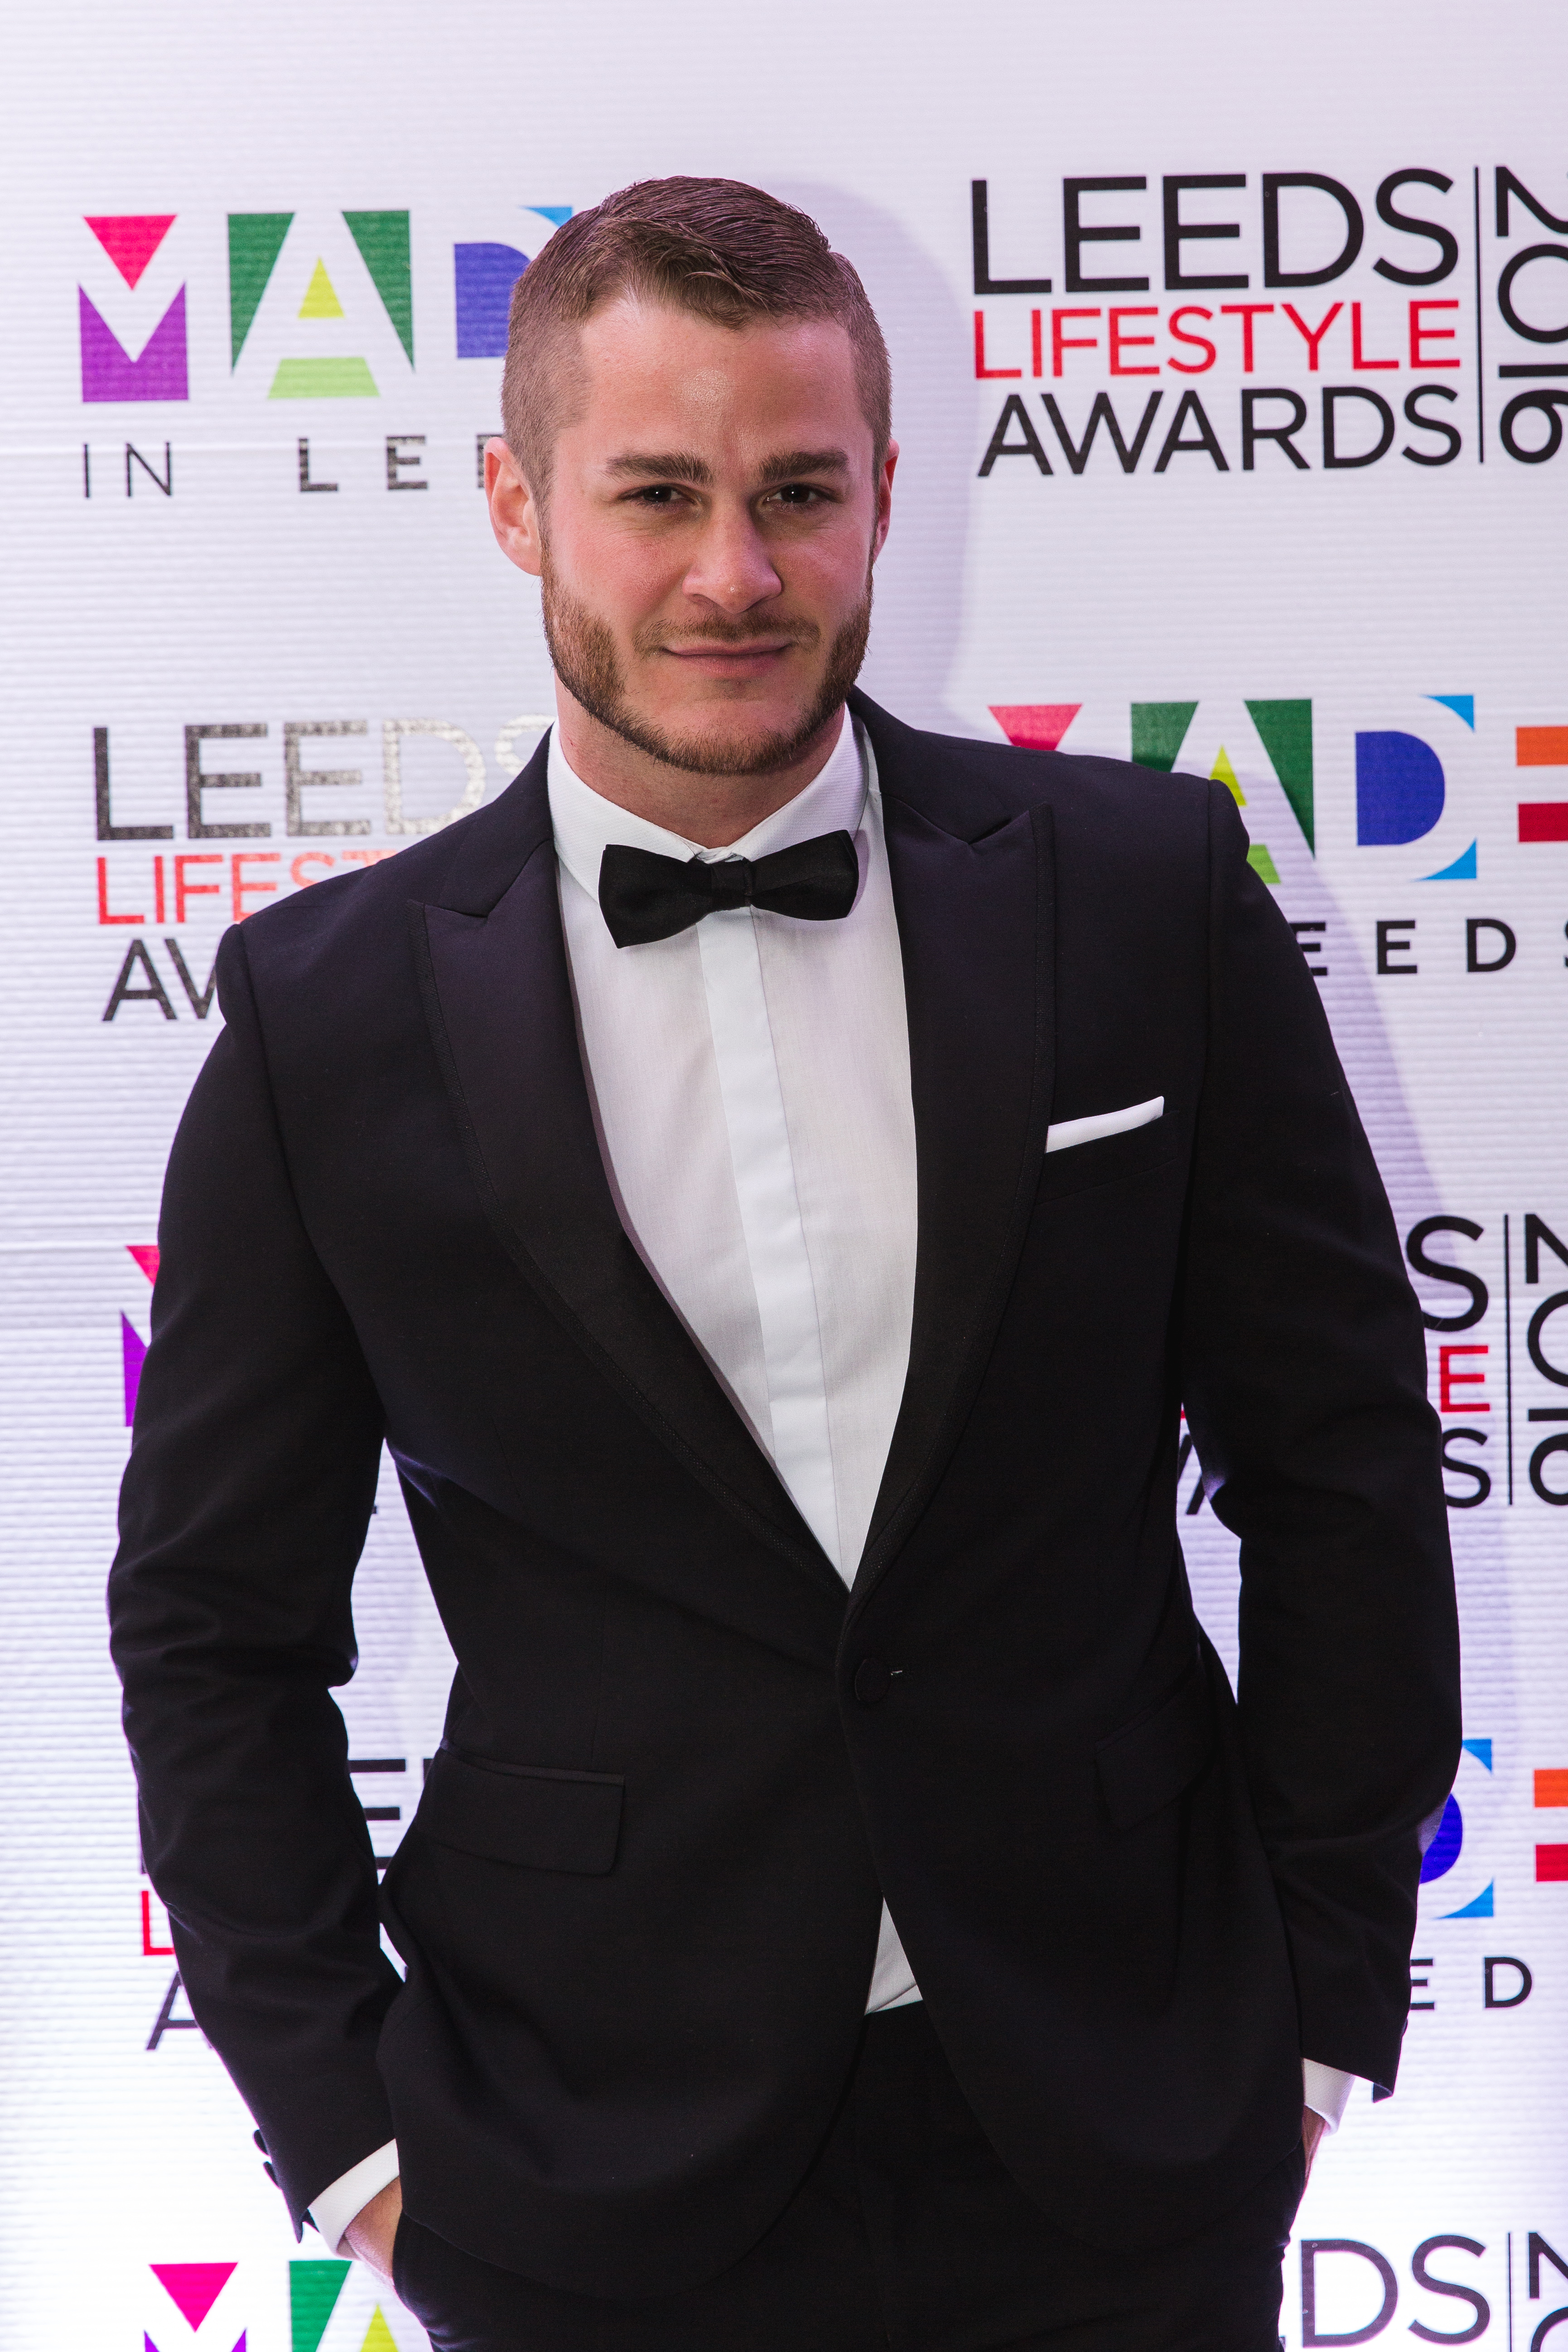 leeds-lifestyle-awards-2016-photos-by-pure-aperture-82-small